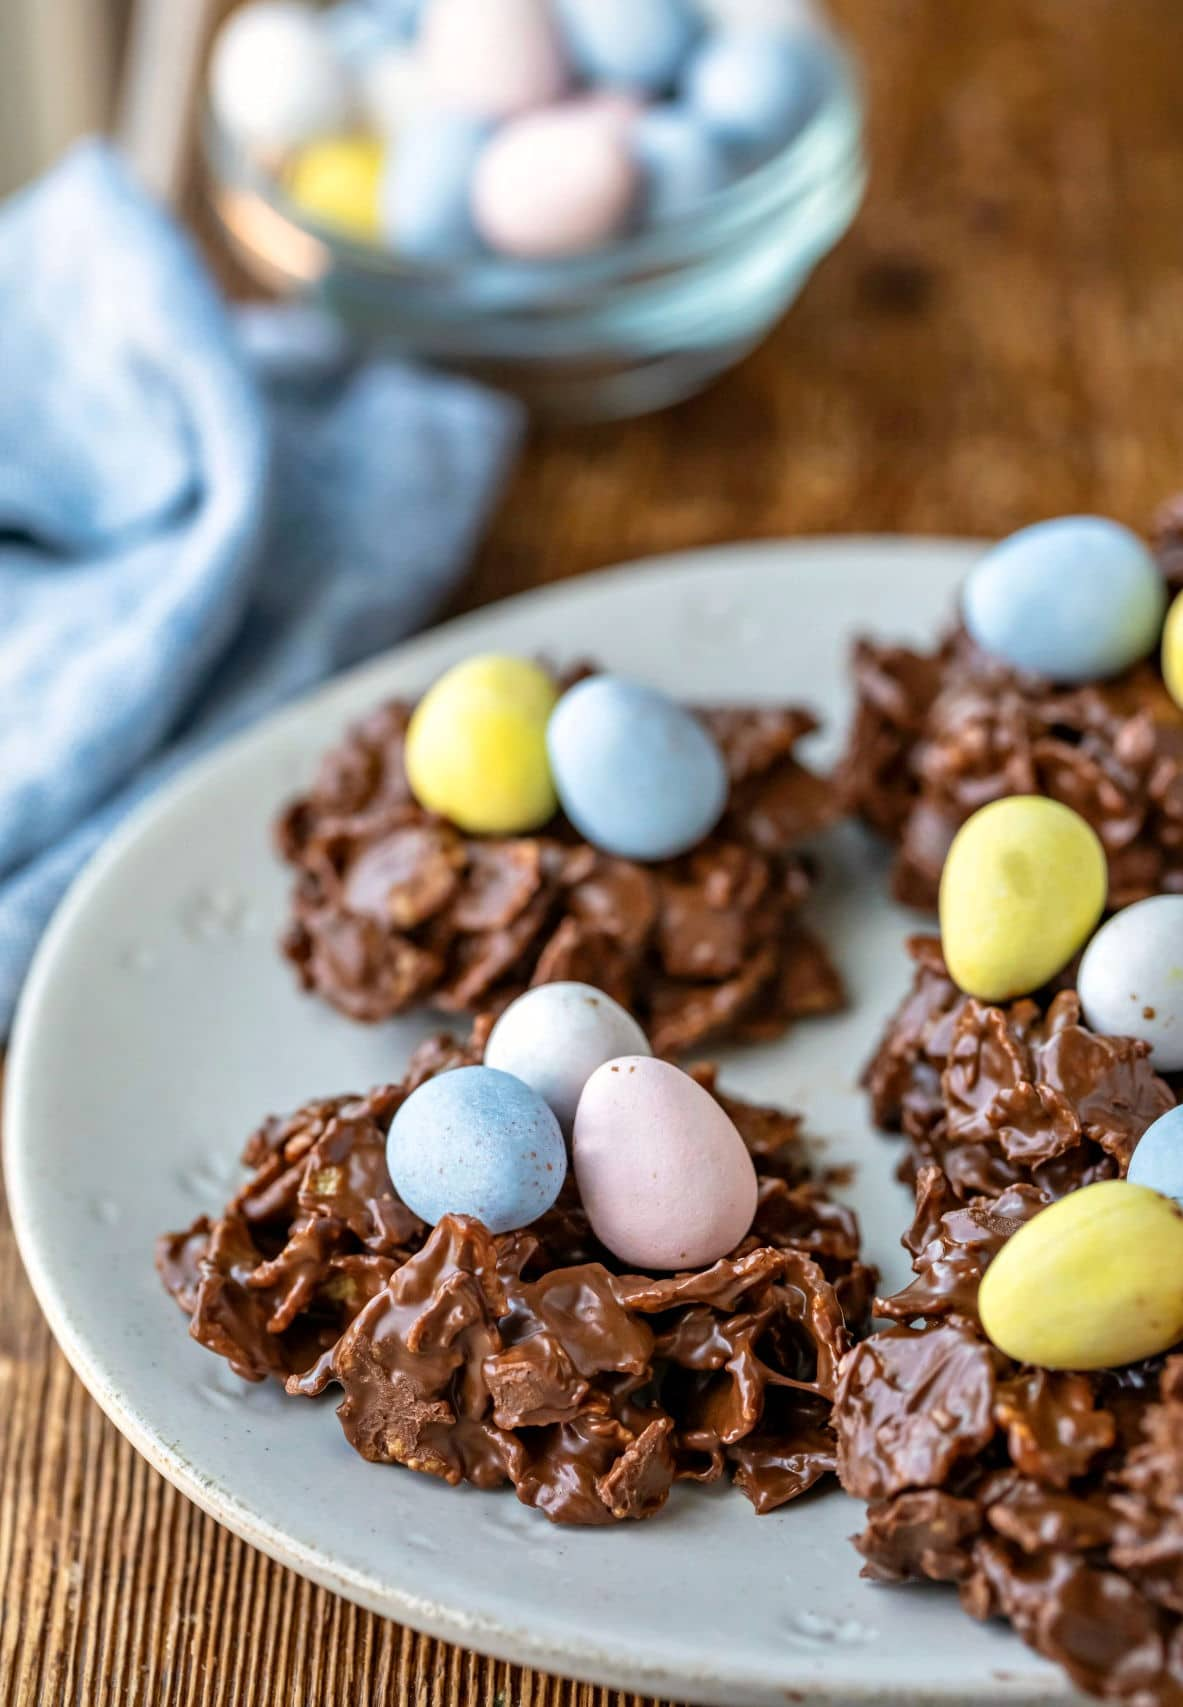 Plate of bird's nest cookies topped with mini eggs.